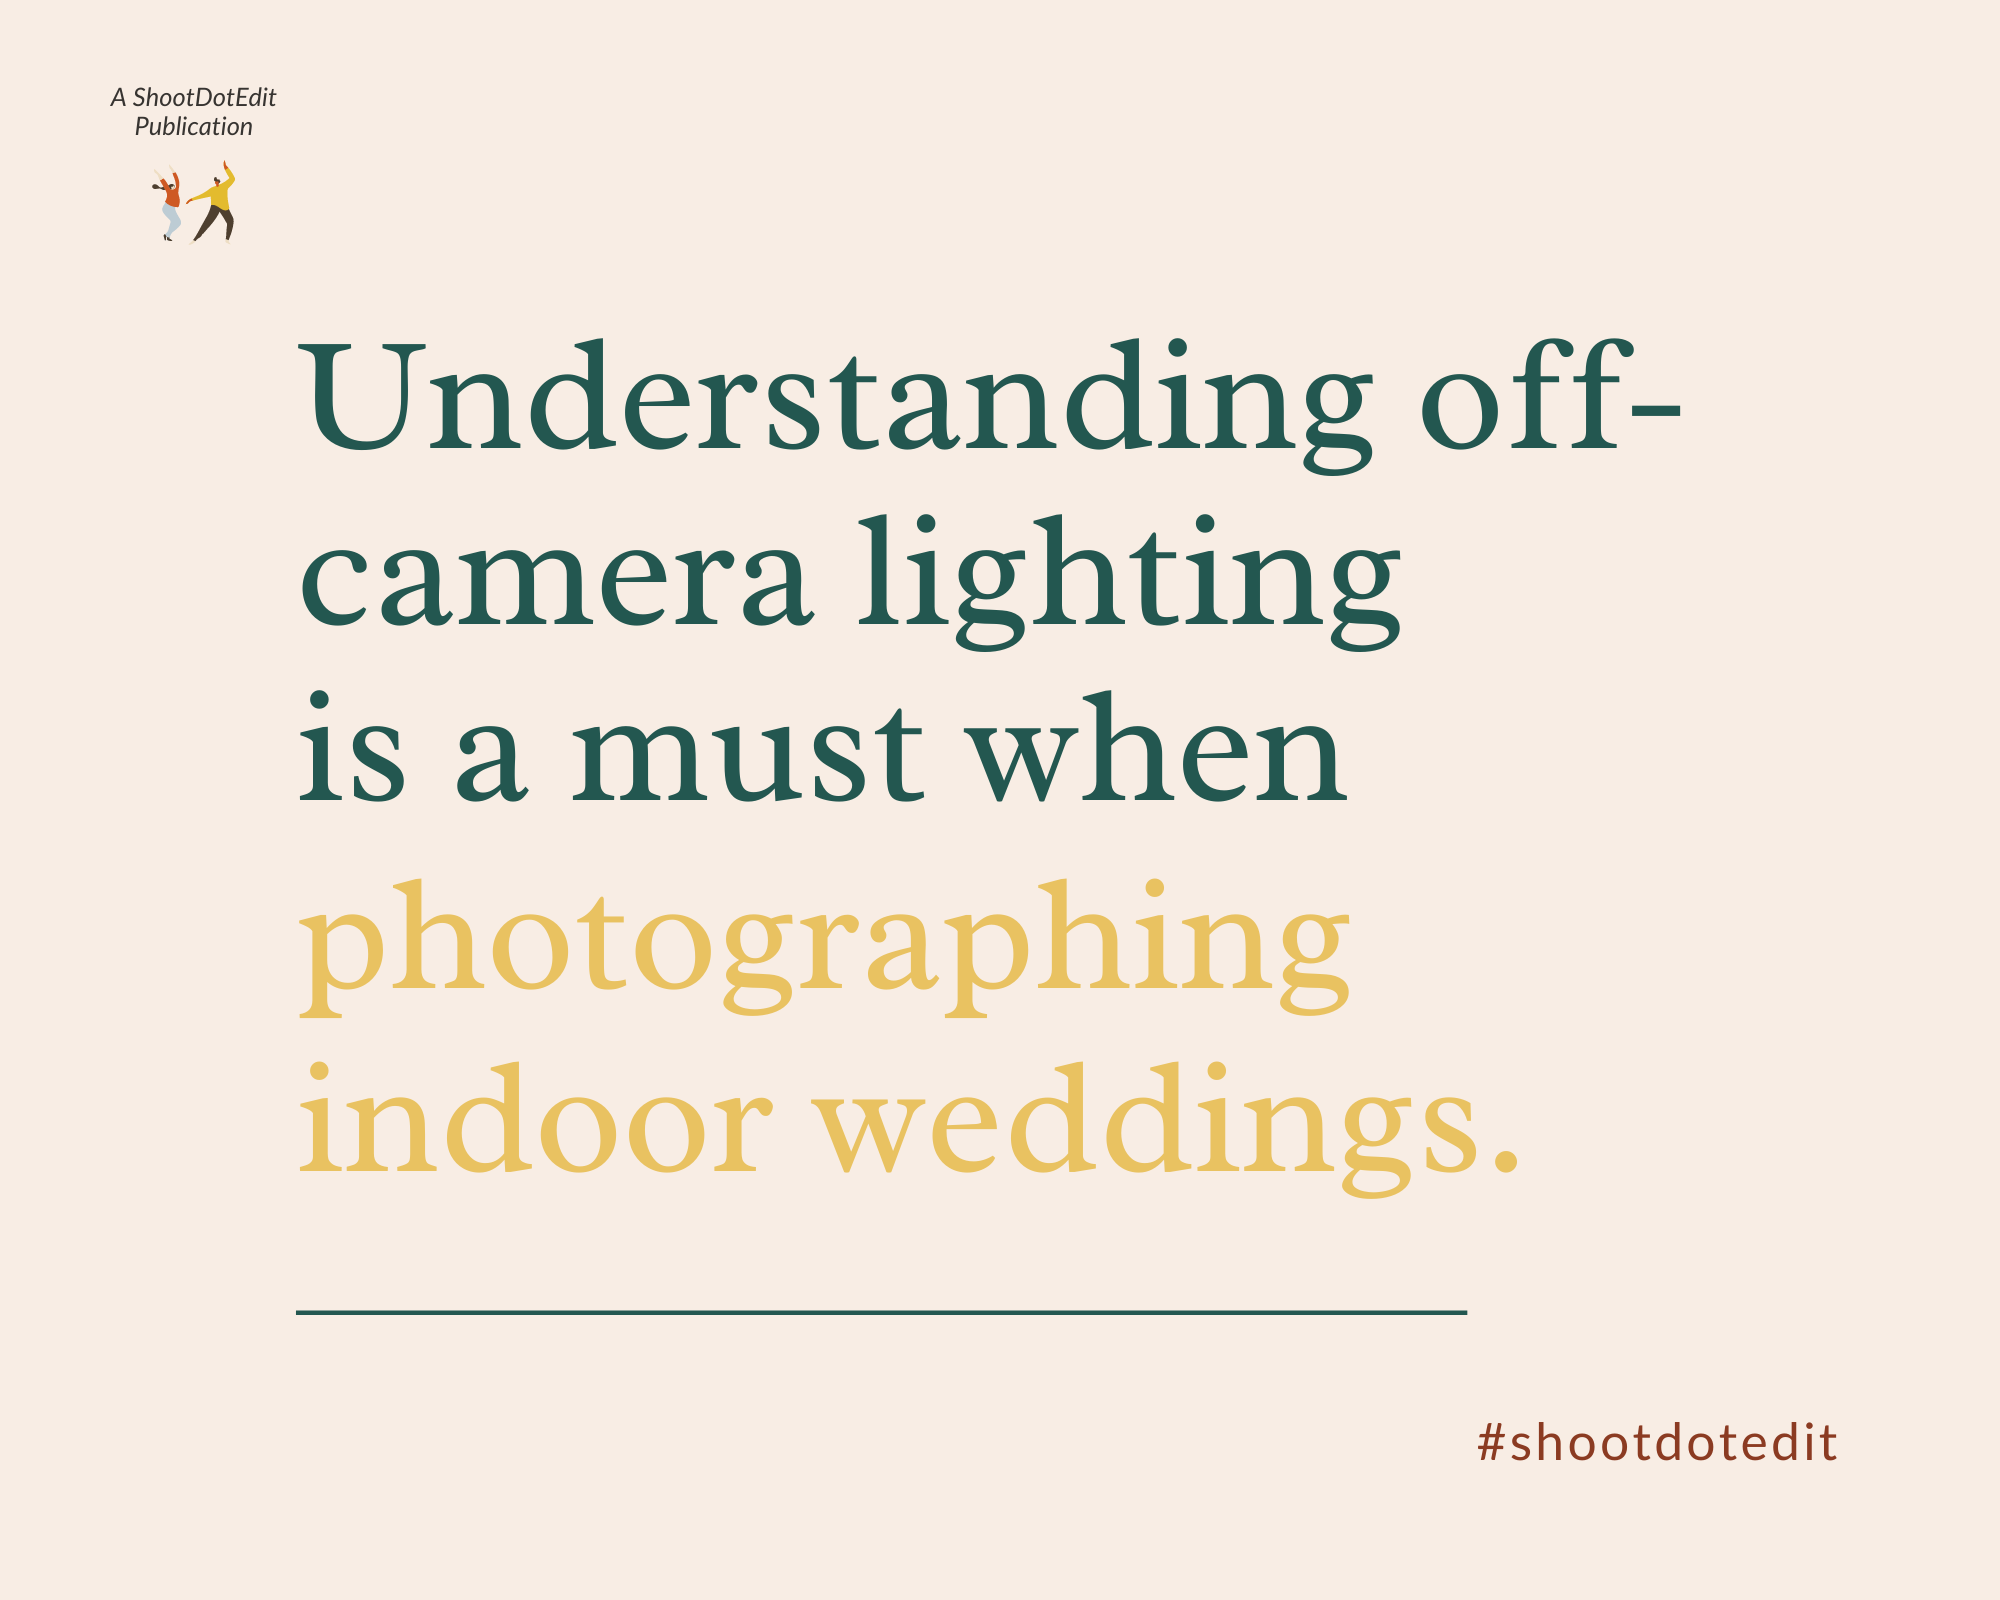 Infographic stating understanding off camera lighting is a must when photographing indoor weddings